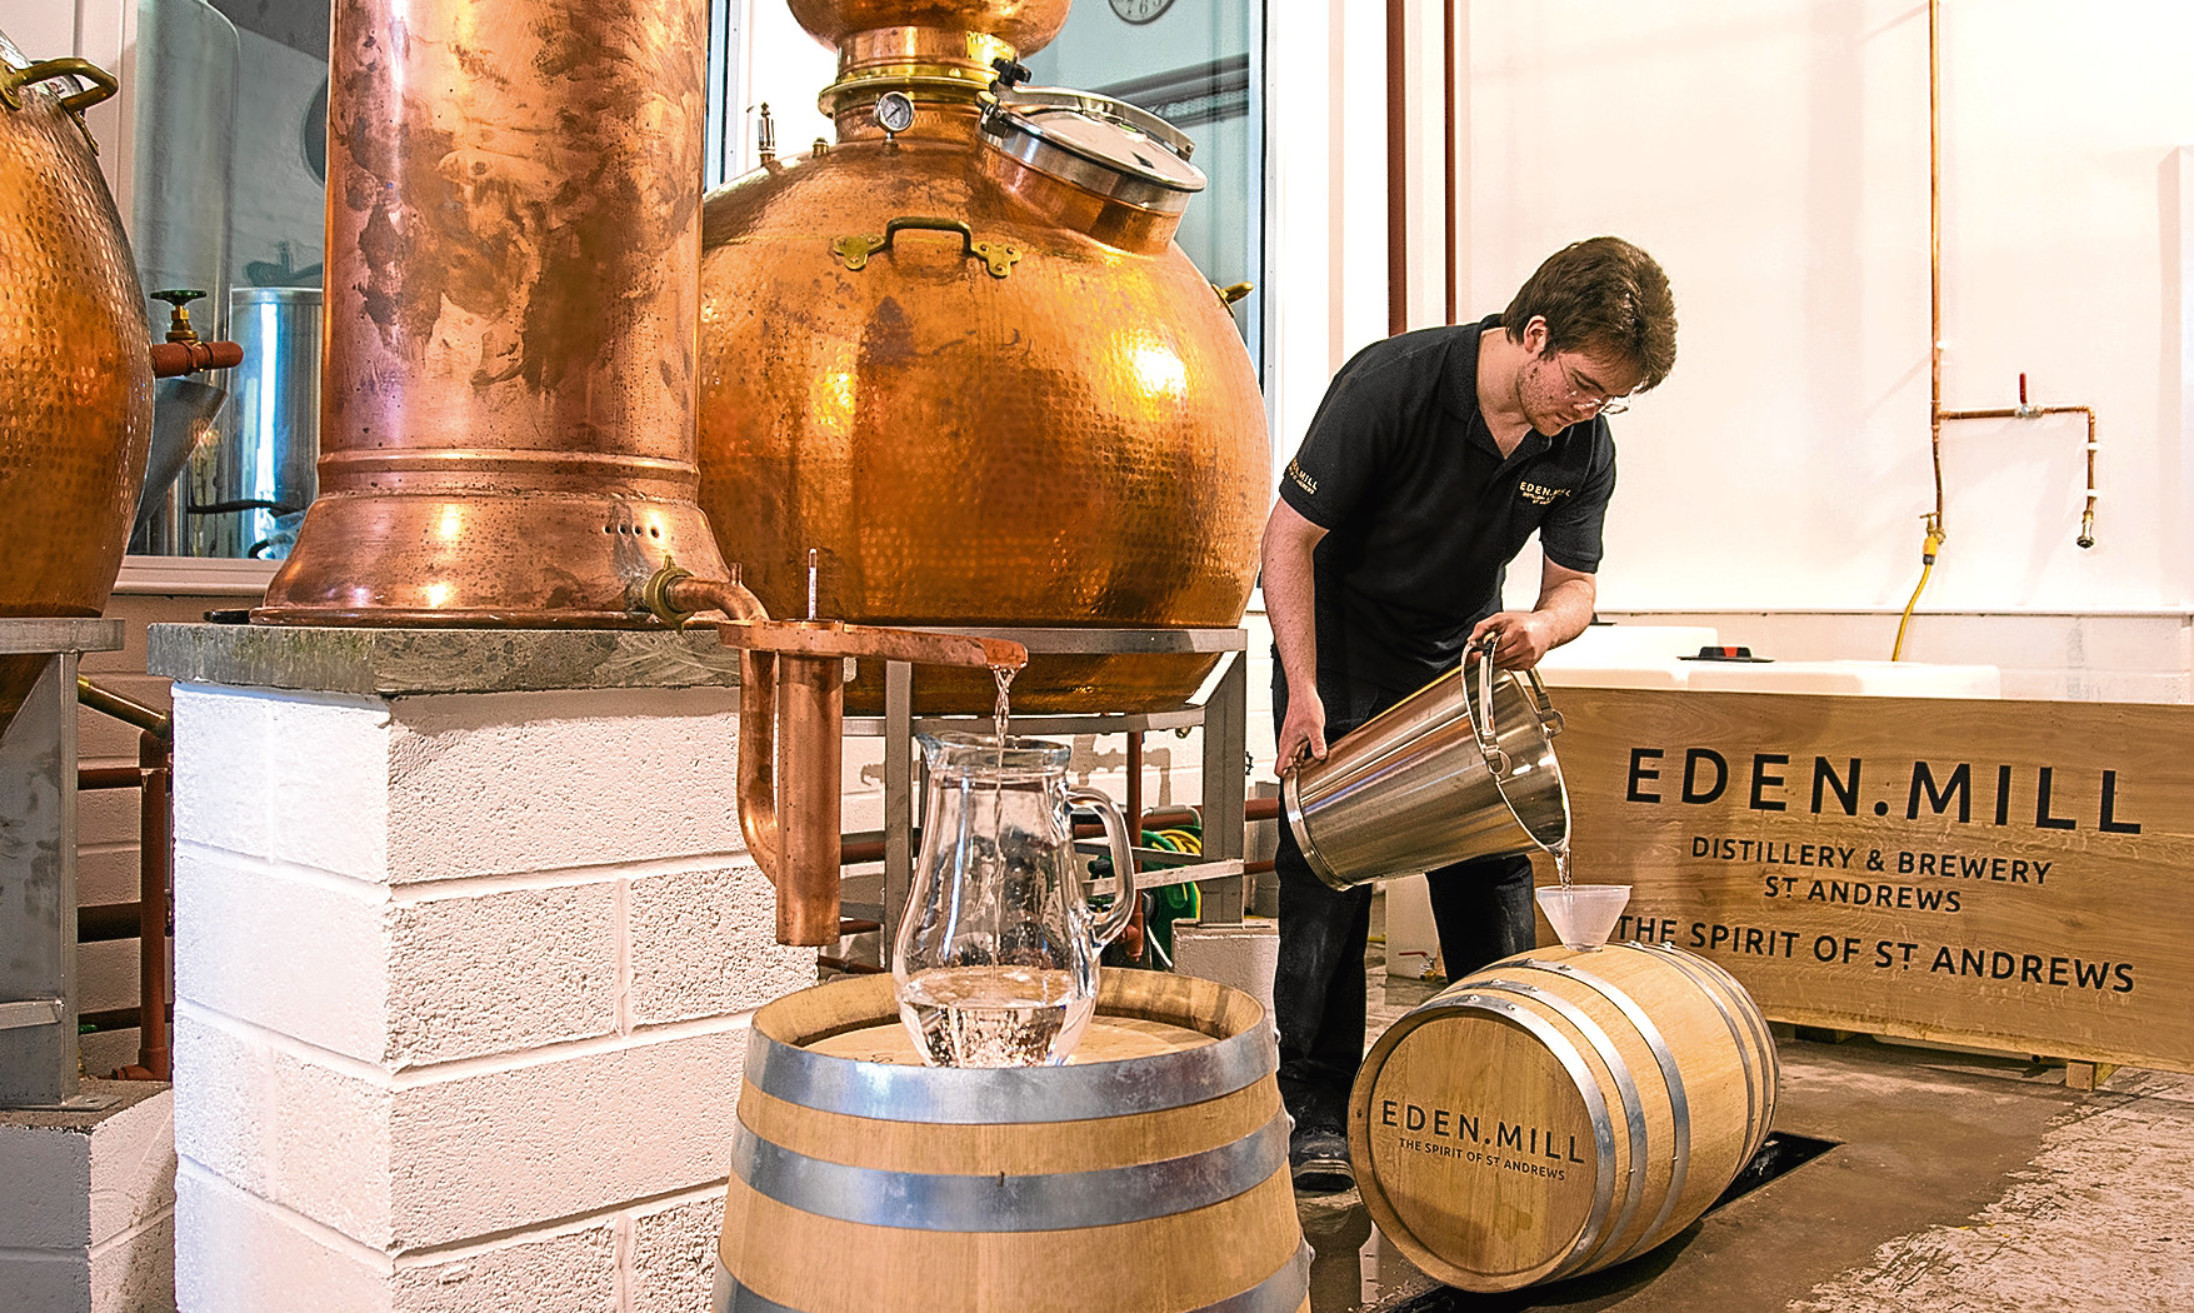 Eden Mill produces a range of drinks from craft beers to gin and whisky